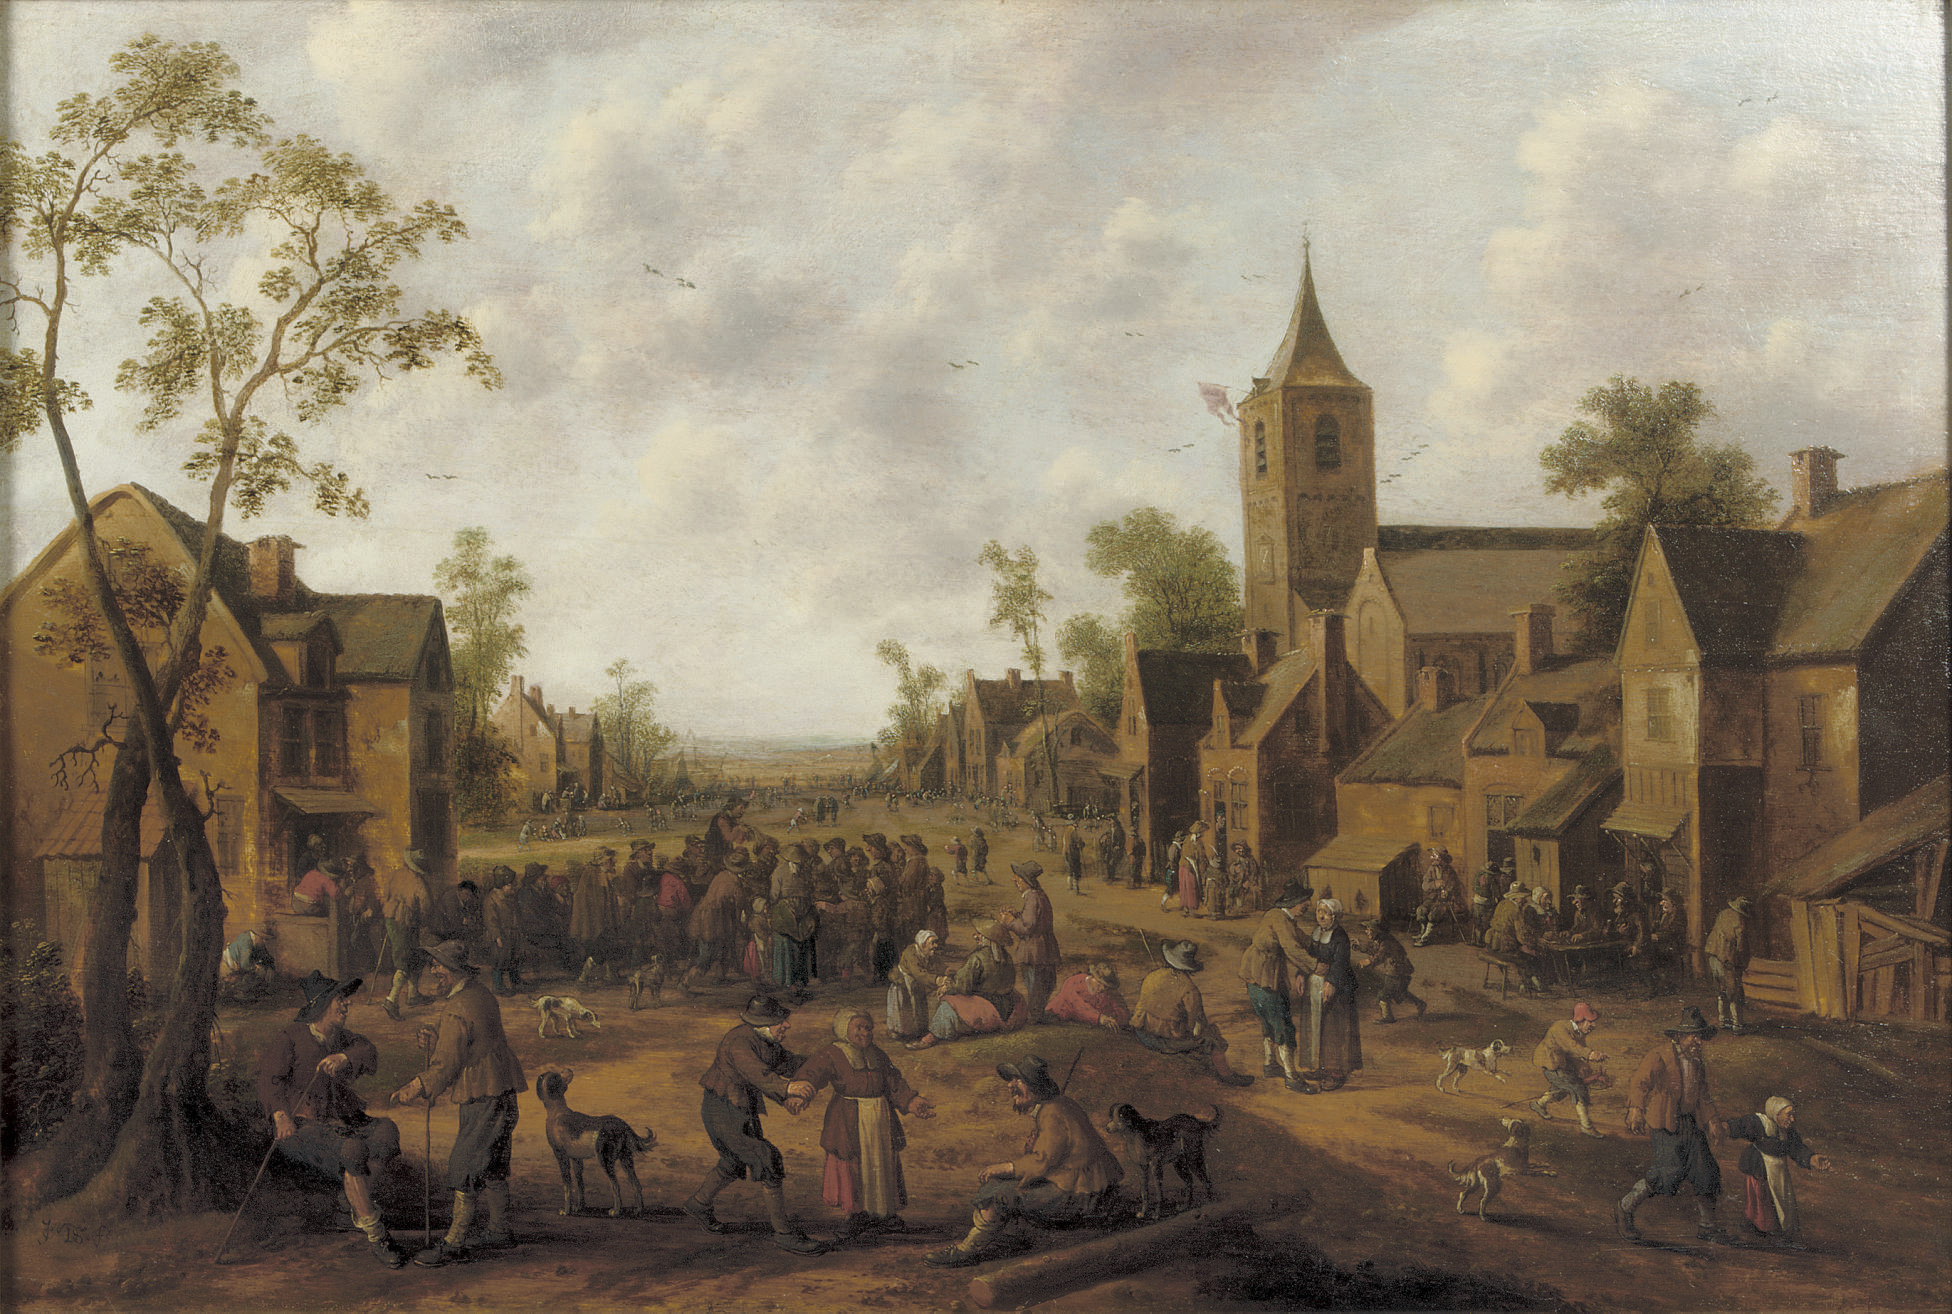 A town with numerous figures gathered in a street